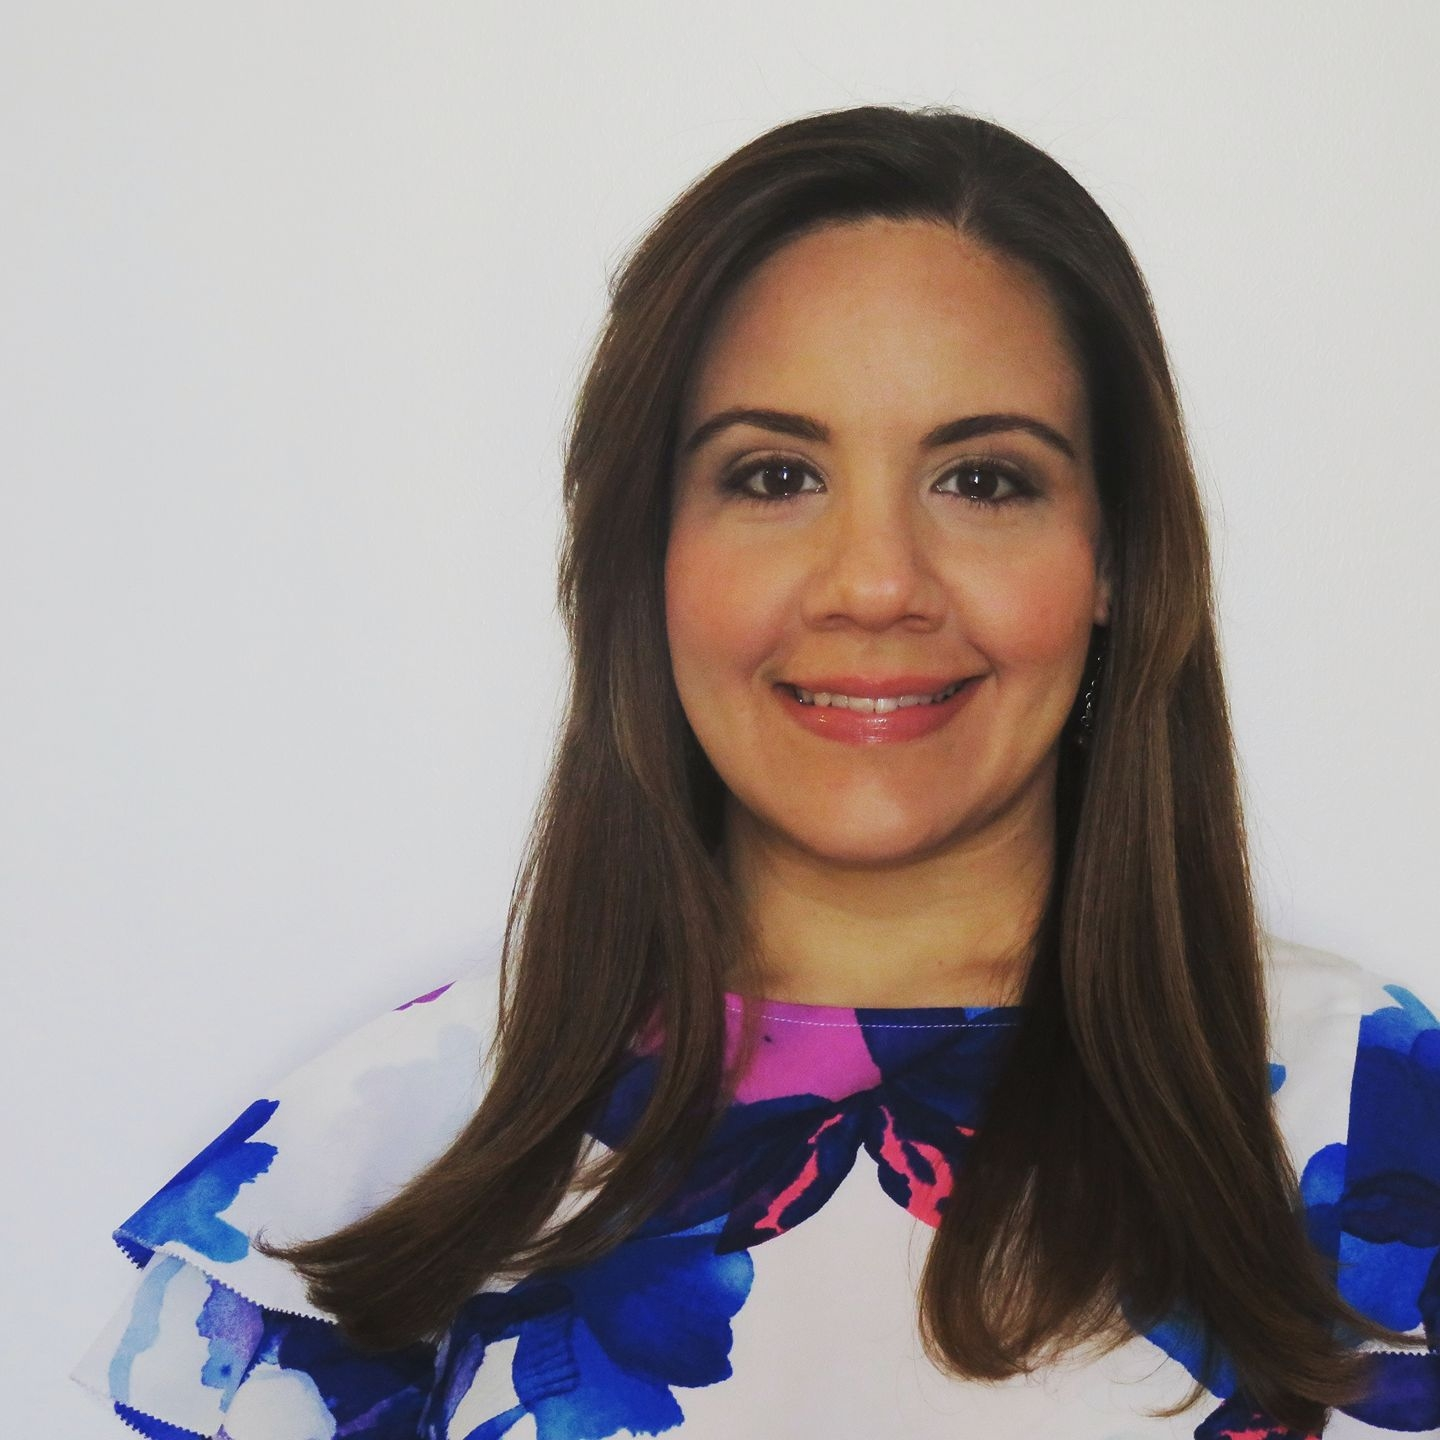 Claudia M. Selgas  TV Producer / Public Relations / Brand & Content Strategy / Corporate Social Responsibility   @cms_photo    https://www.linkedin.com/in/claudiamselgas/